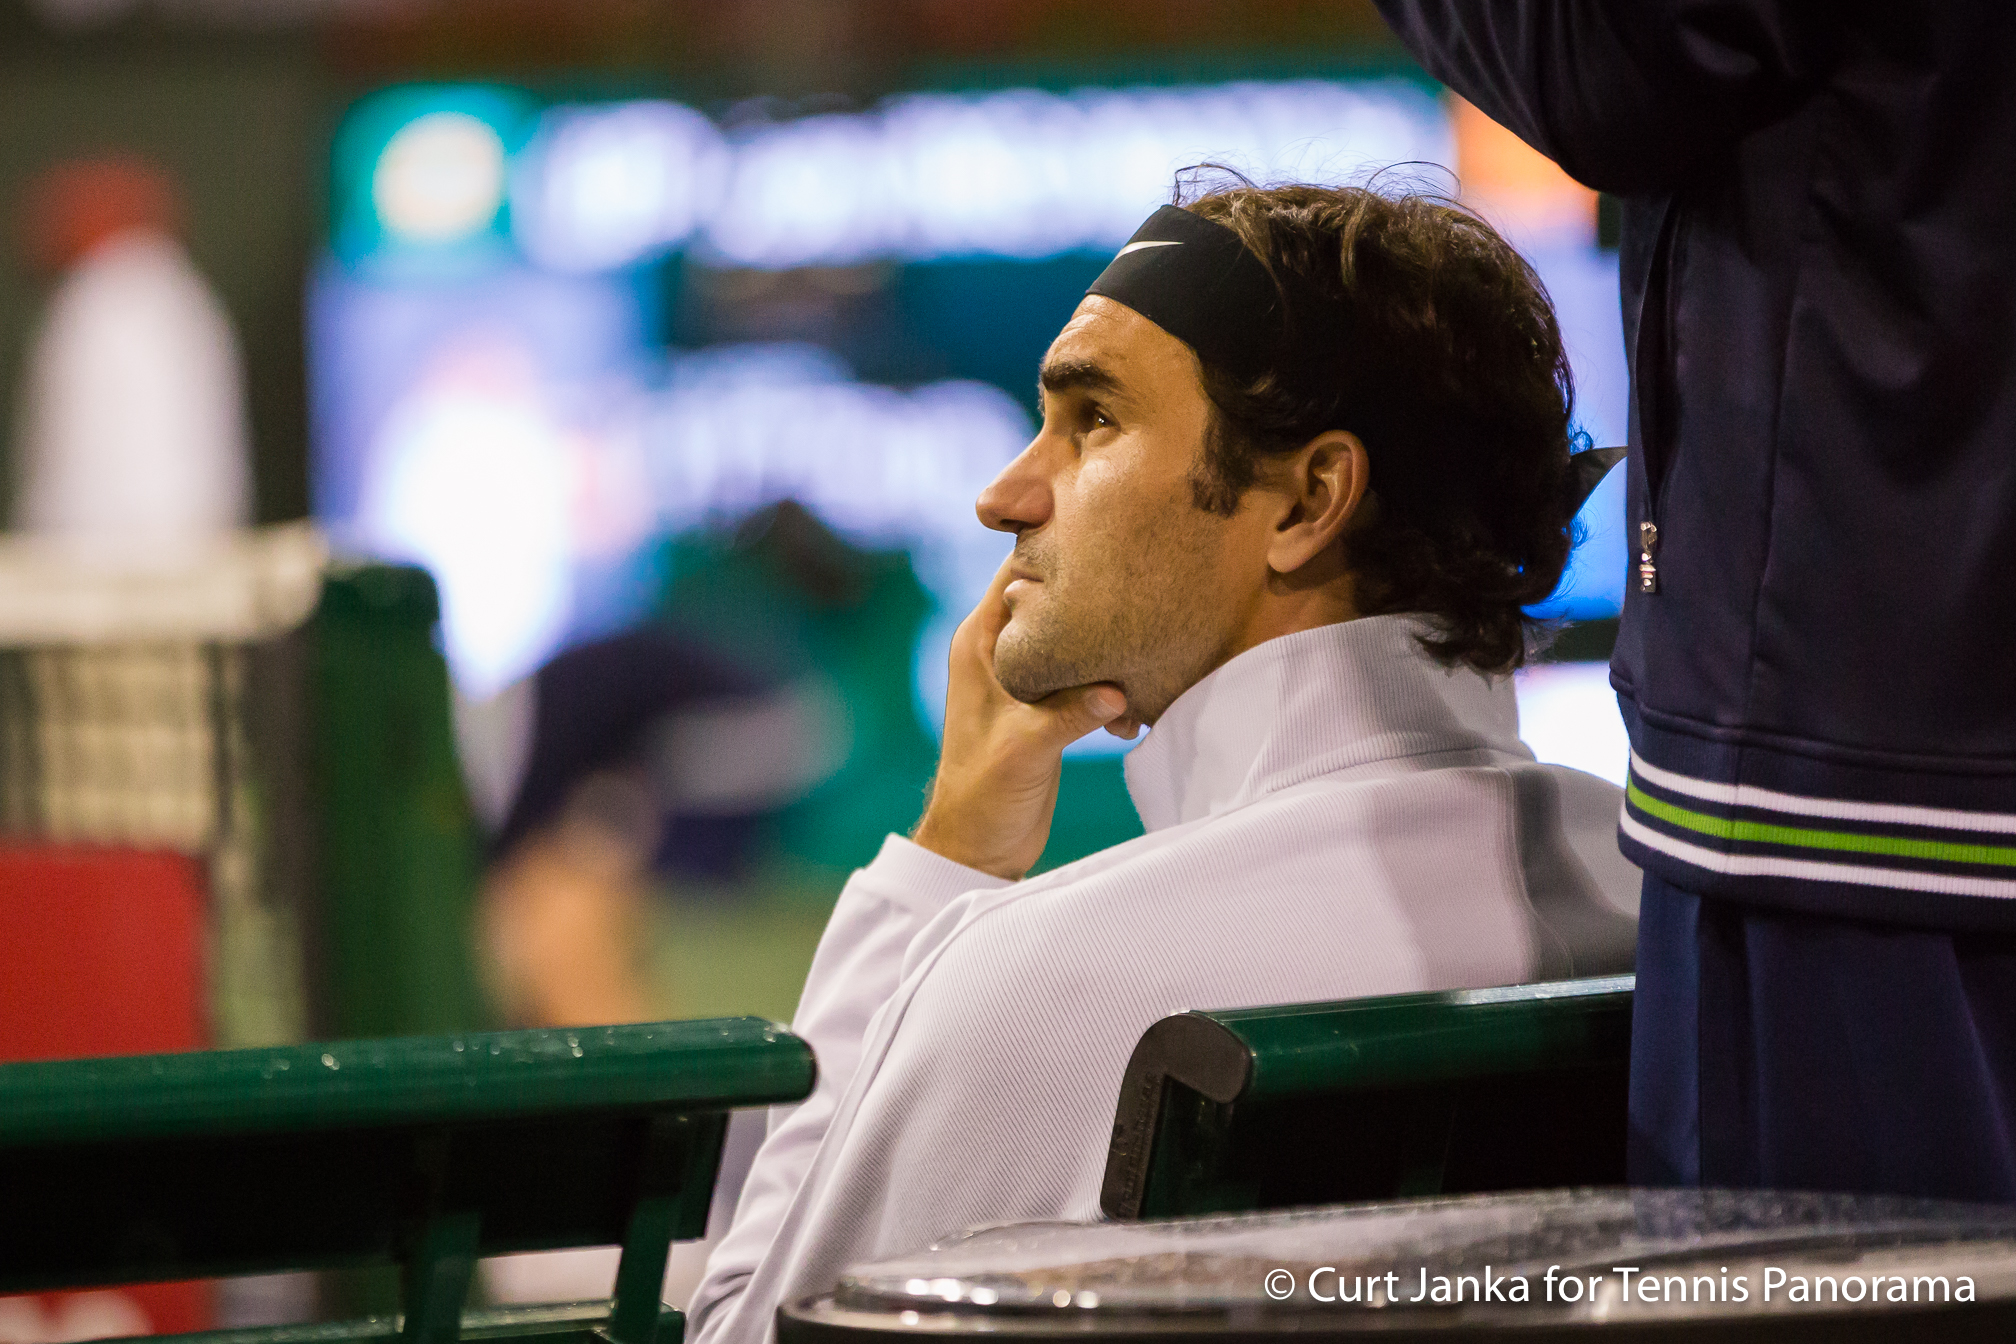 Federer cruises at Indian Wells, Thiem retires hurt